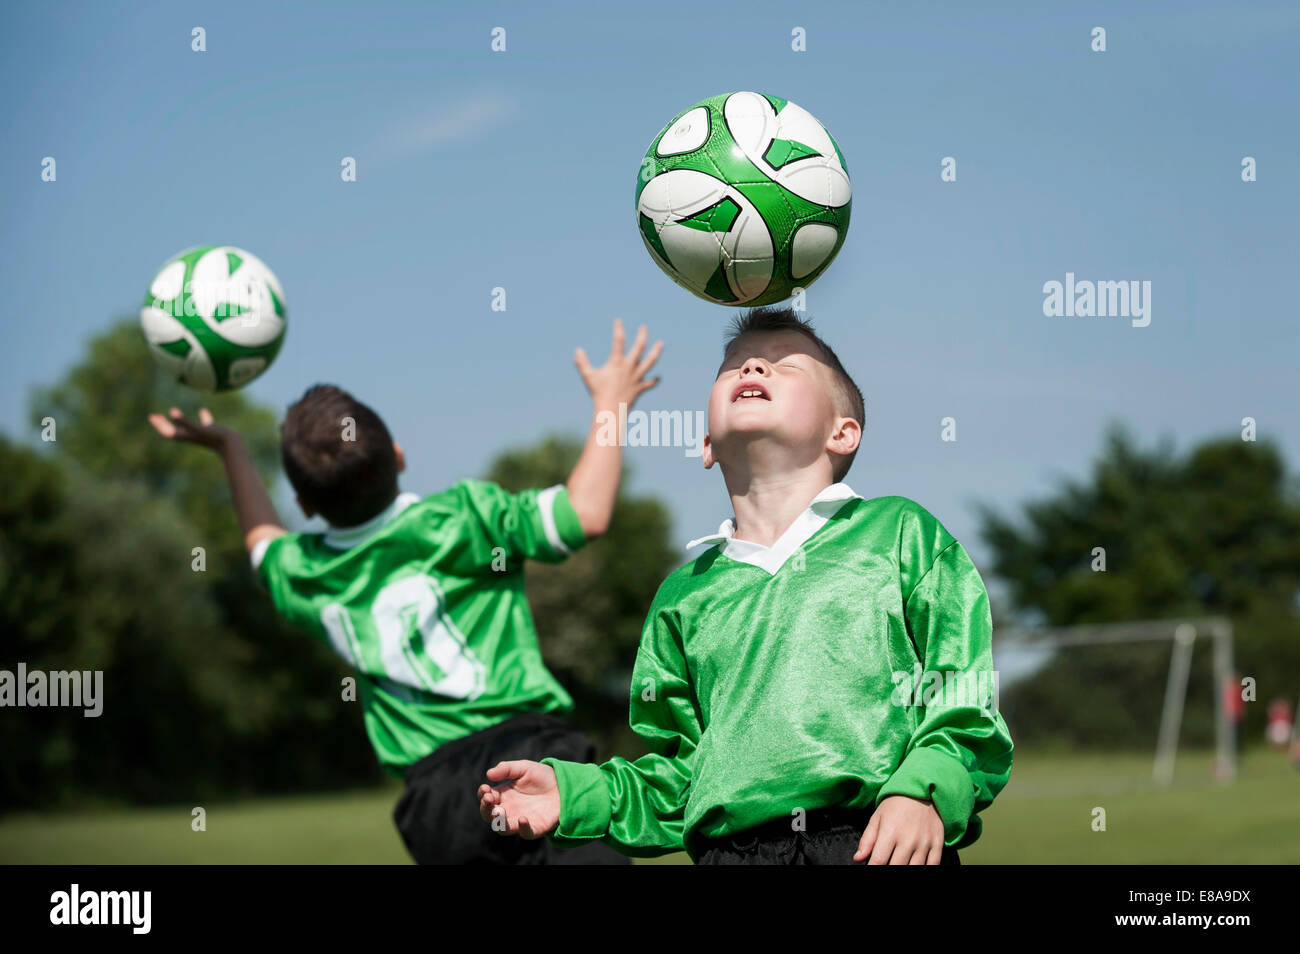 Two young football players learning ball control - Stock Image